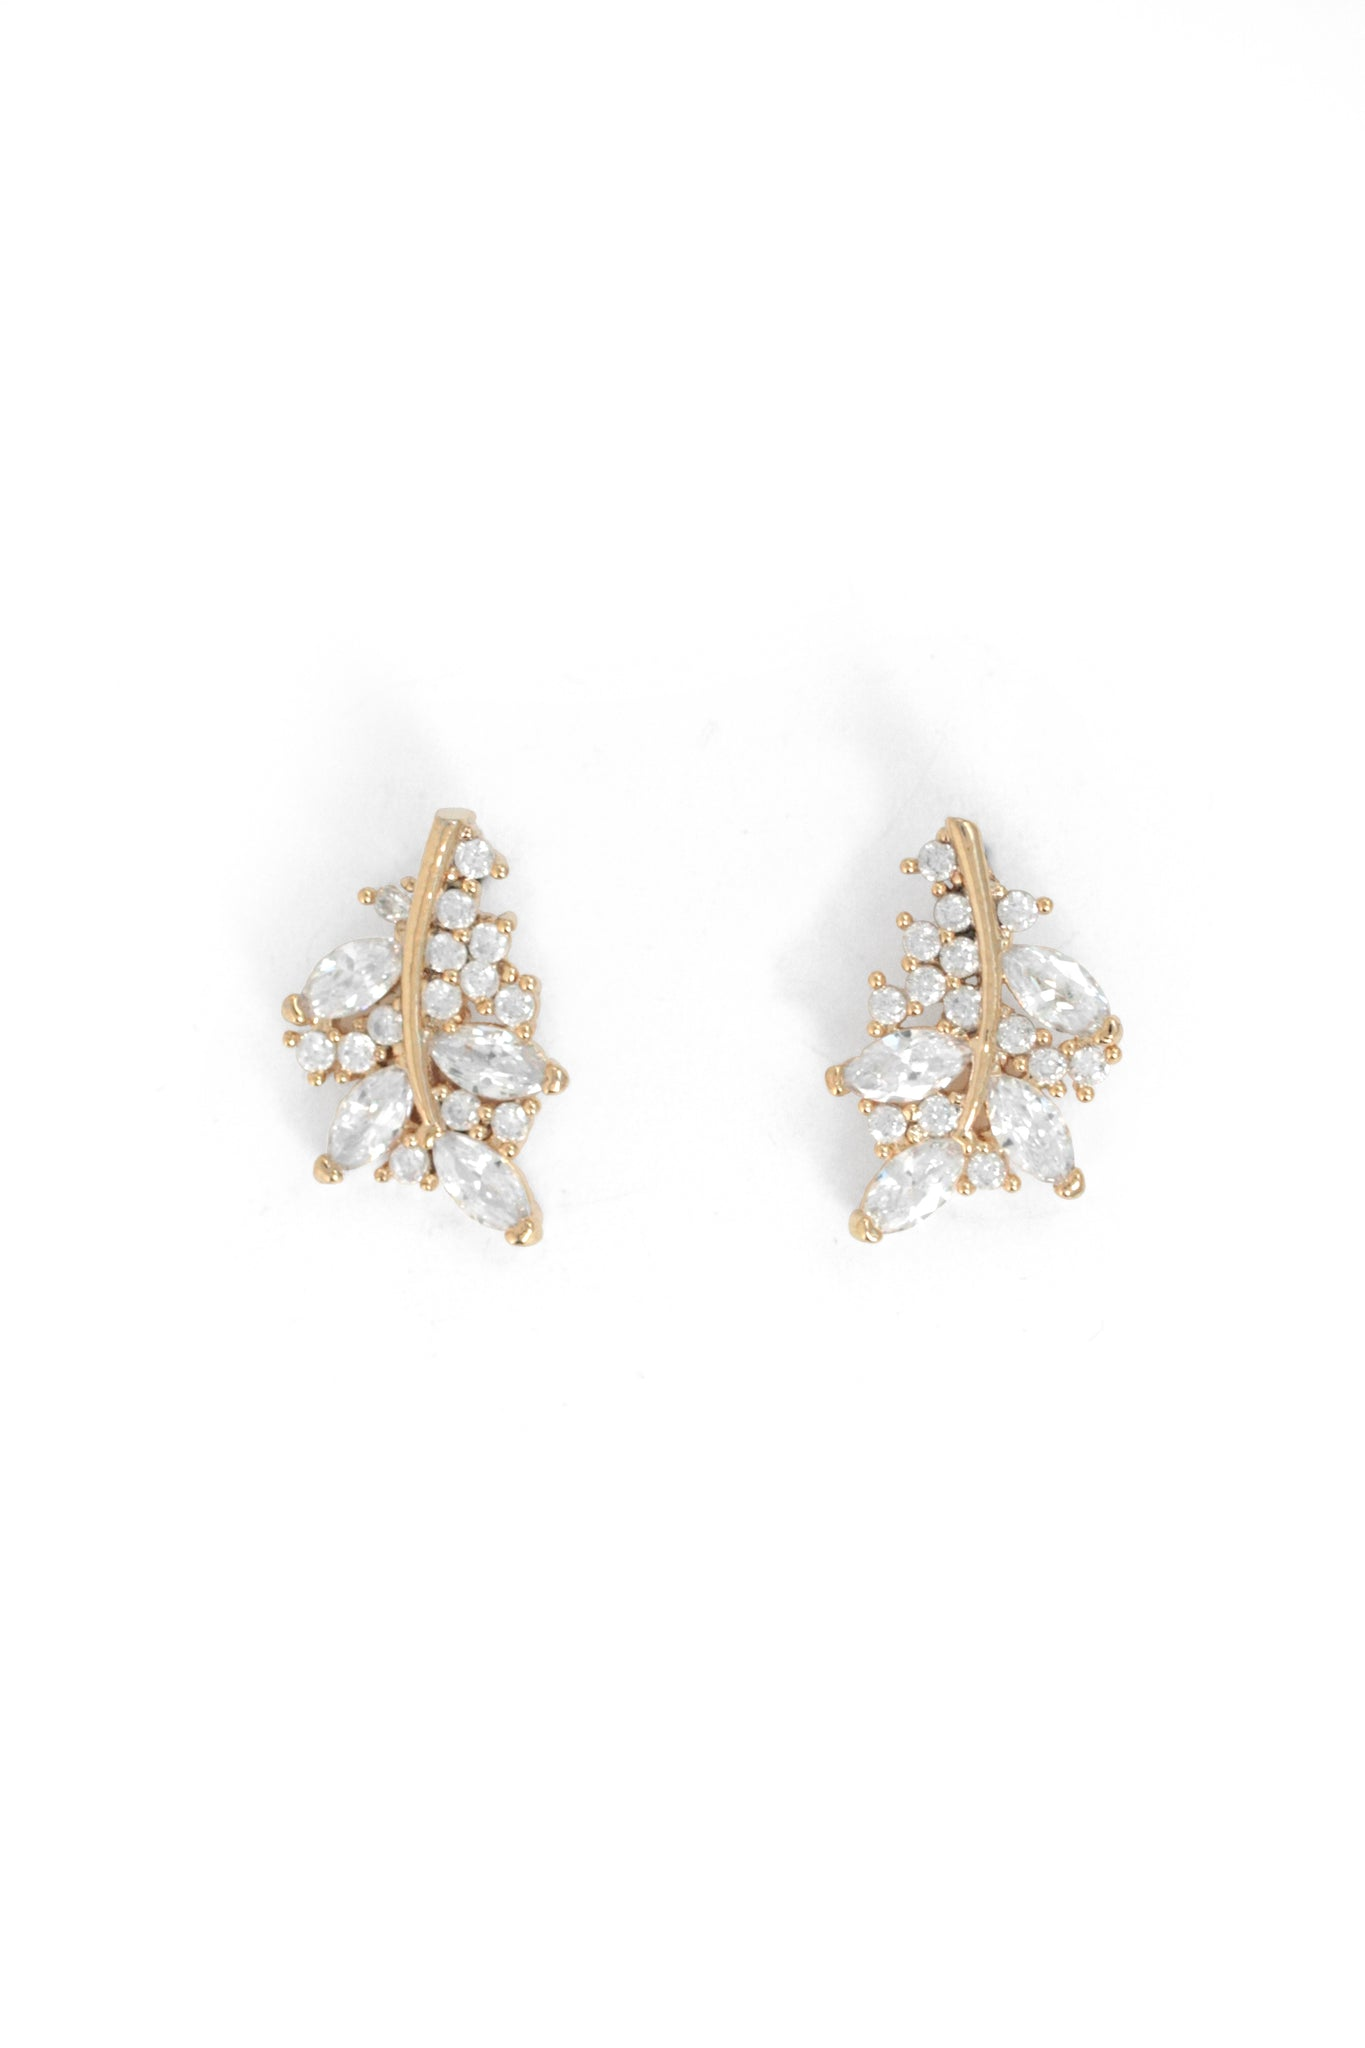 Encrusted Leaf Earrings - Gold